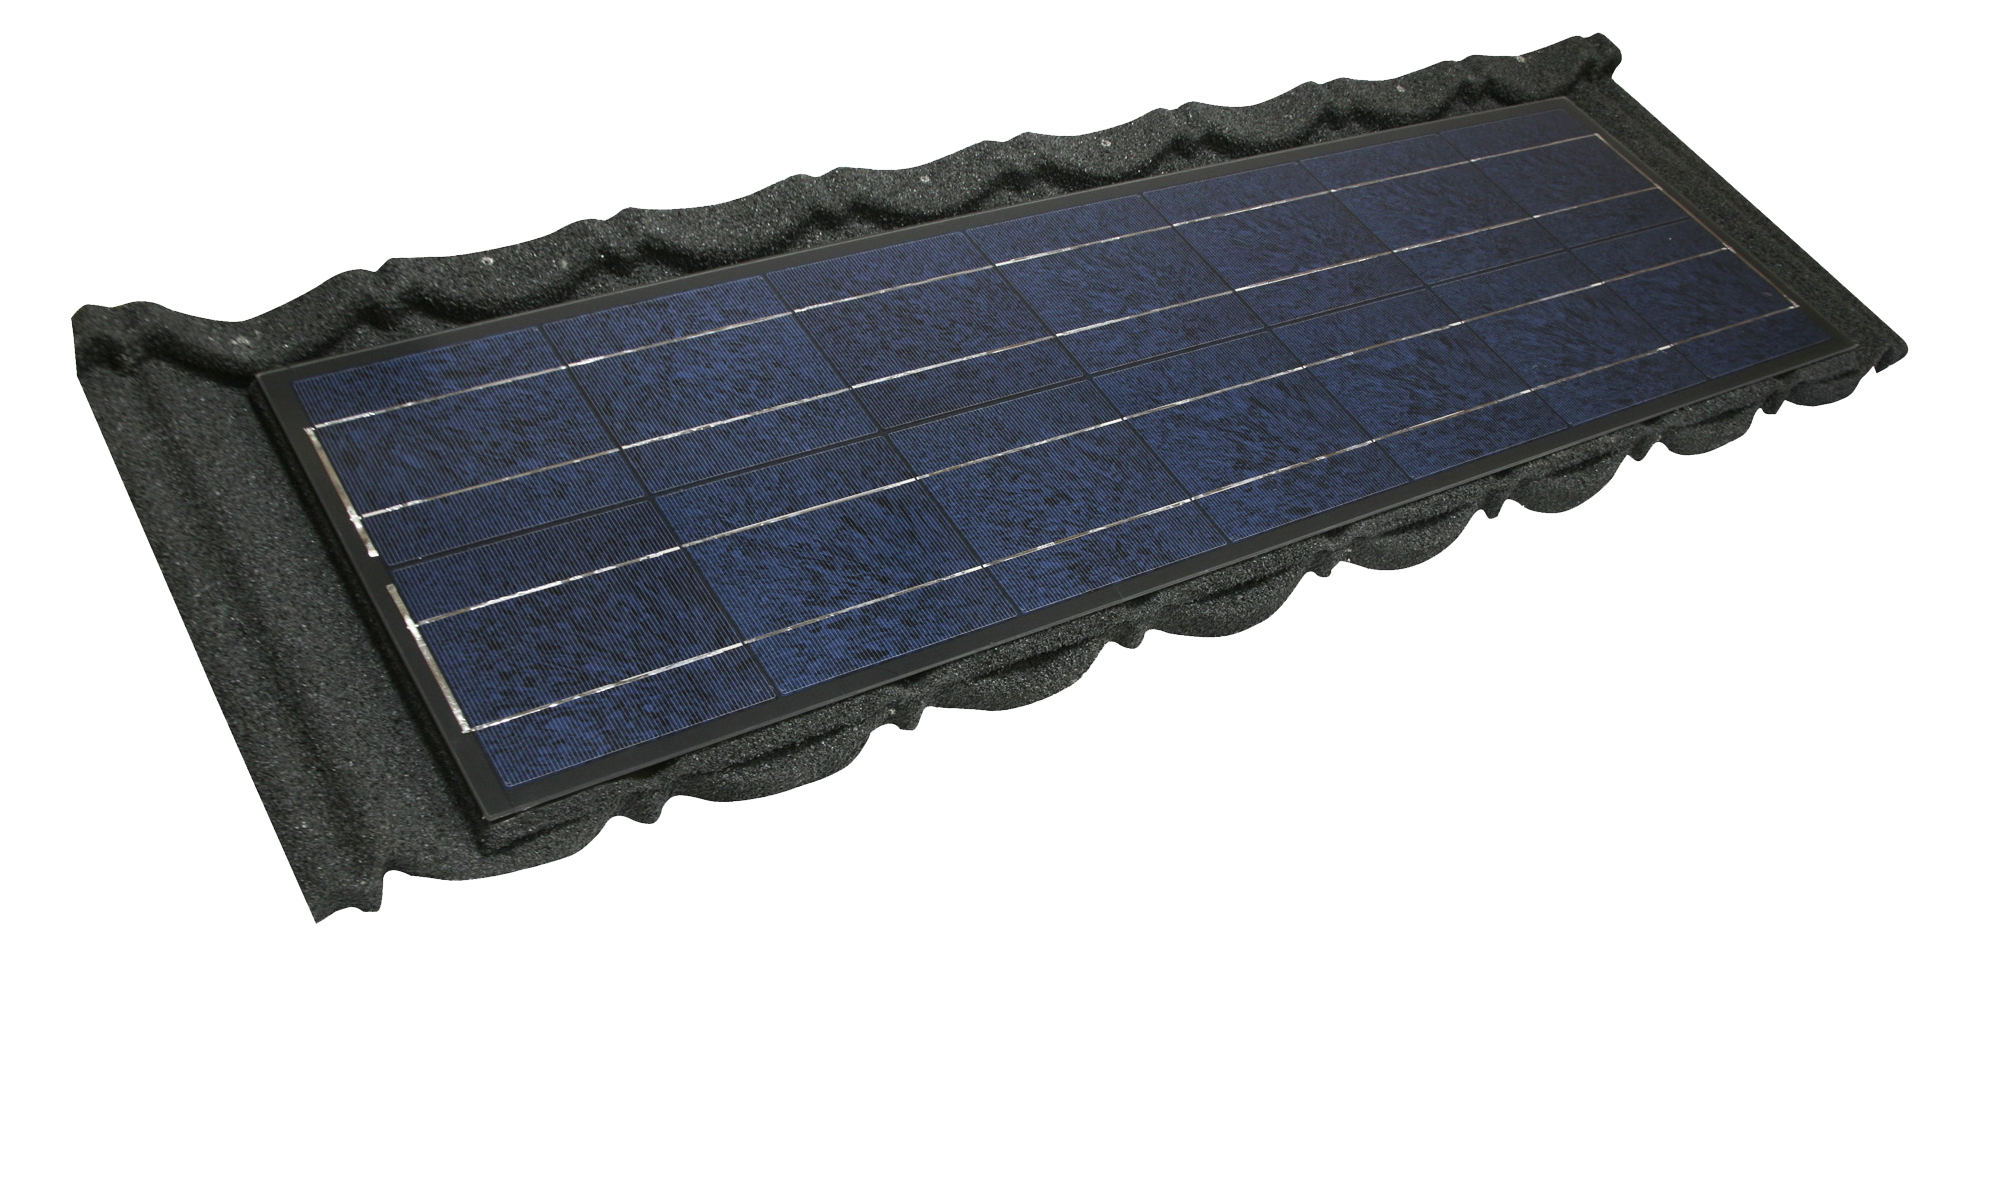 Charcoal Metrotile Bond Roof Tile with Integrated Photovoltaic Panel